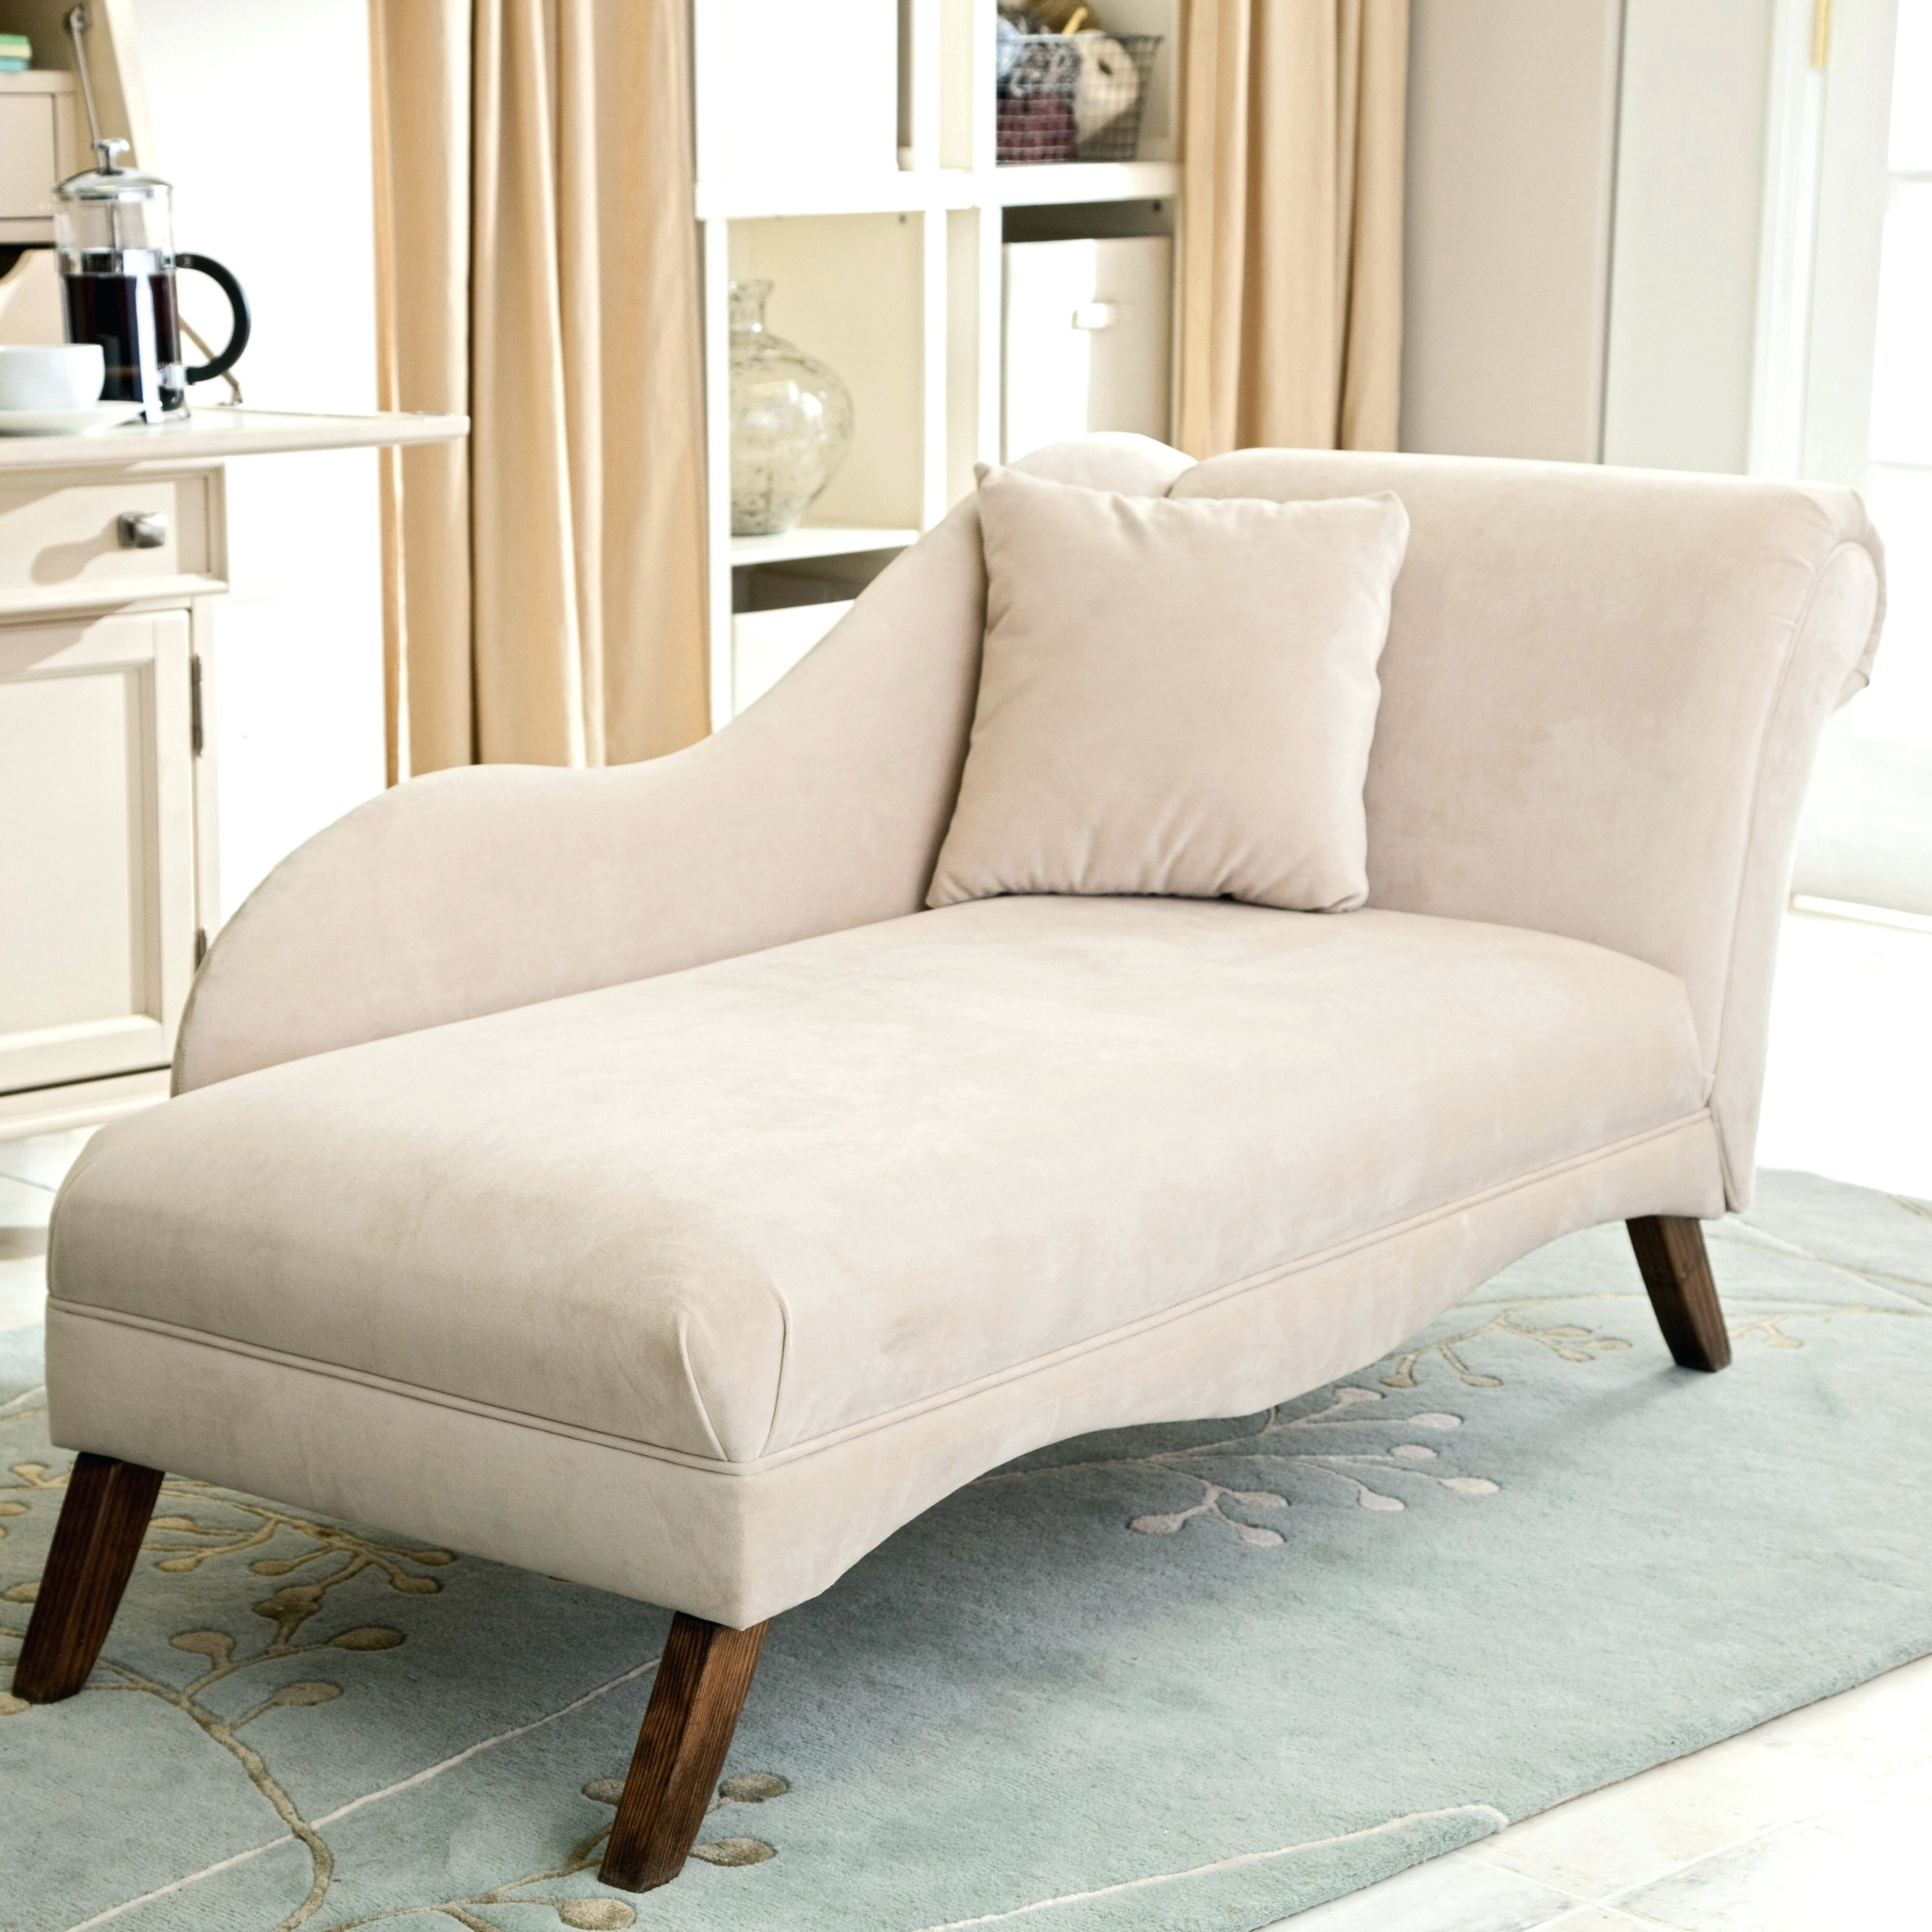 Photo Gallery of Bedroom Chaise Lounge Chairs (Showing 5 of 15 Photos)